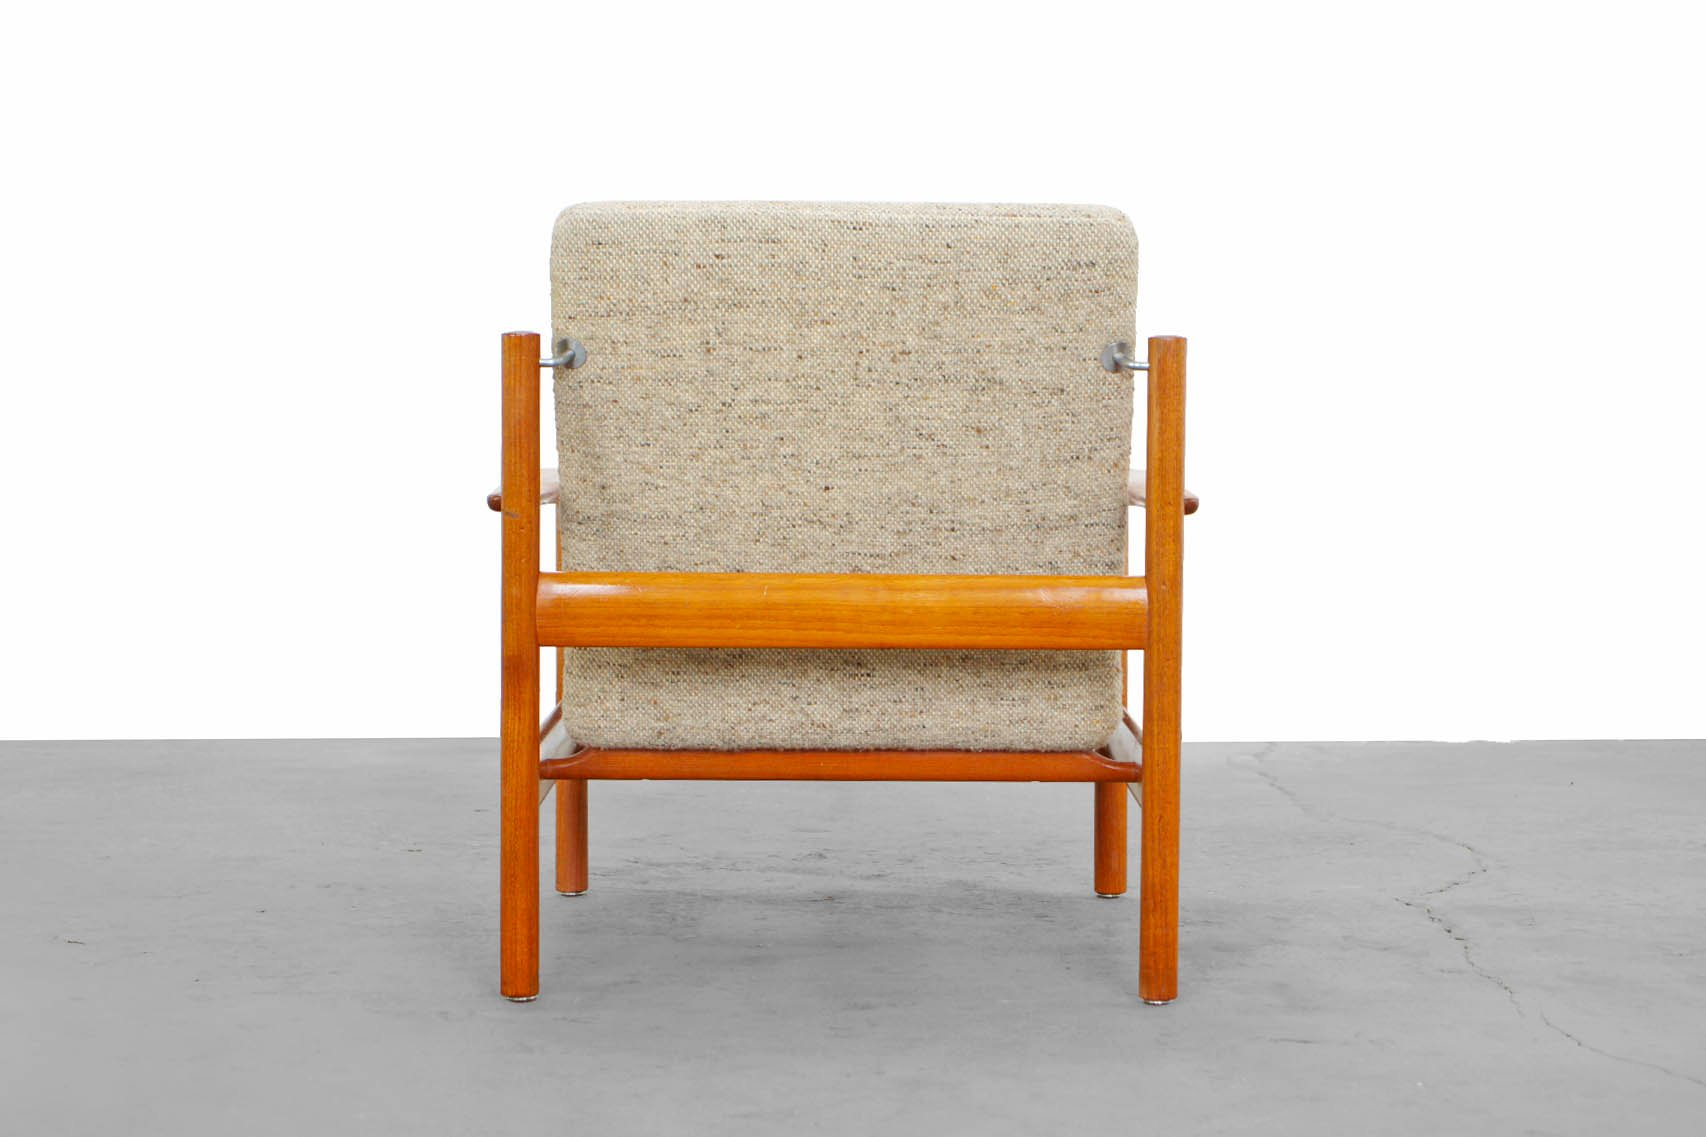 ... Fabric Easy Chair by Sven Ivar Dysthe for Dokka M?bler Norge, 1960 5